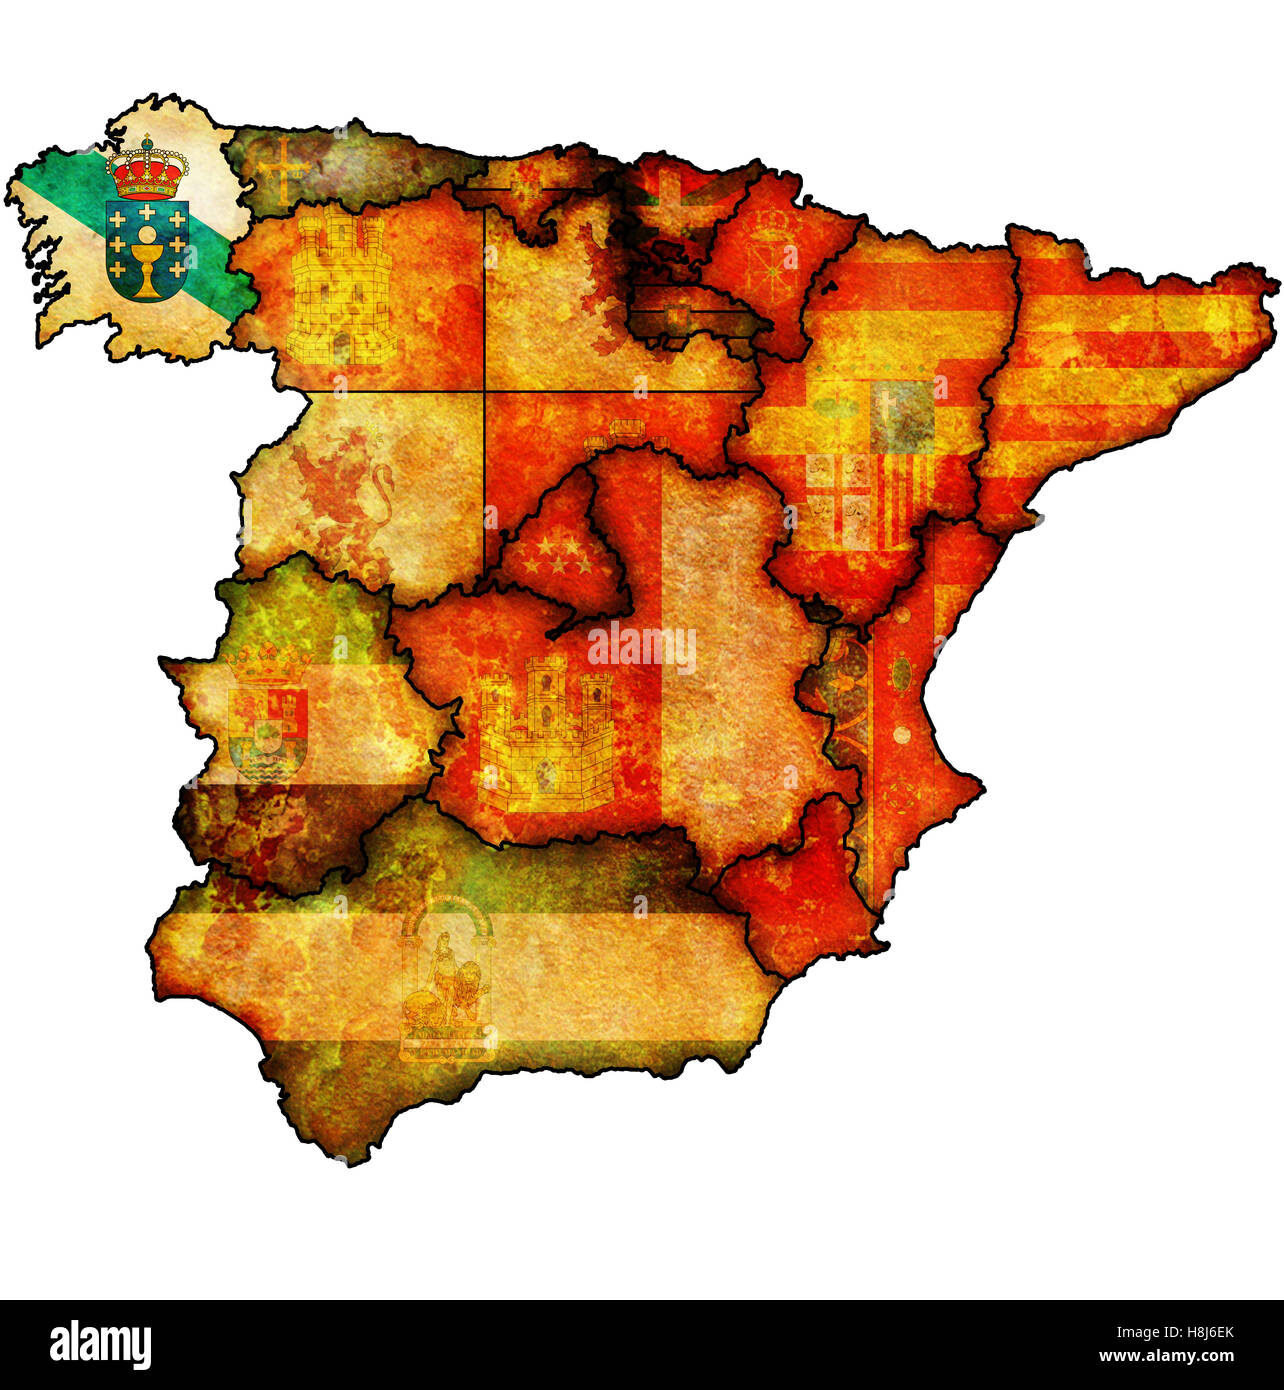 galicia region on administration map of regions of spain with flags ...